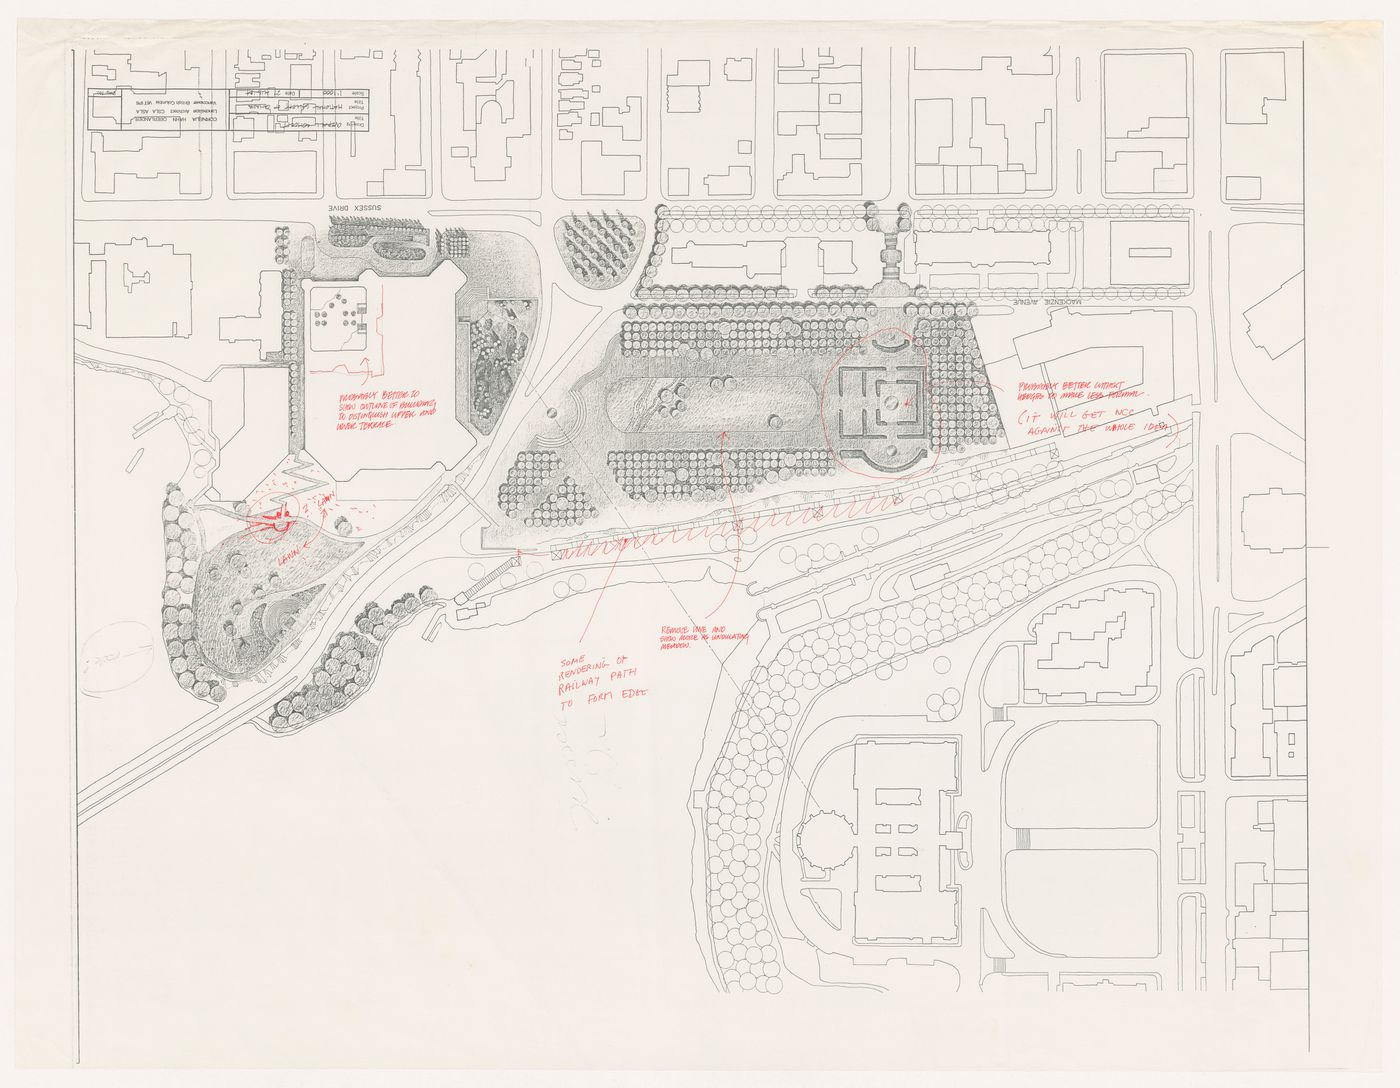 Landscape plan with annotations for National Gallery of Canada, Ottawa, Ontario